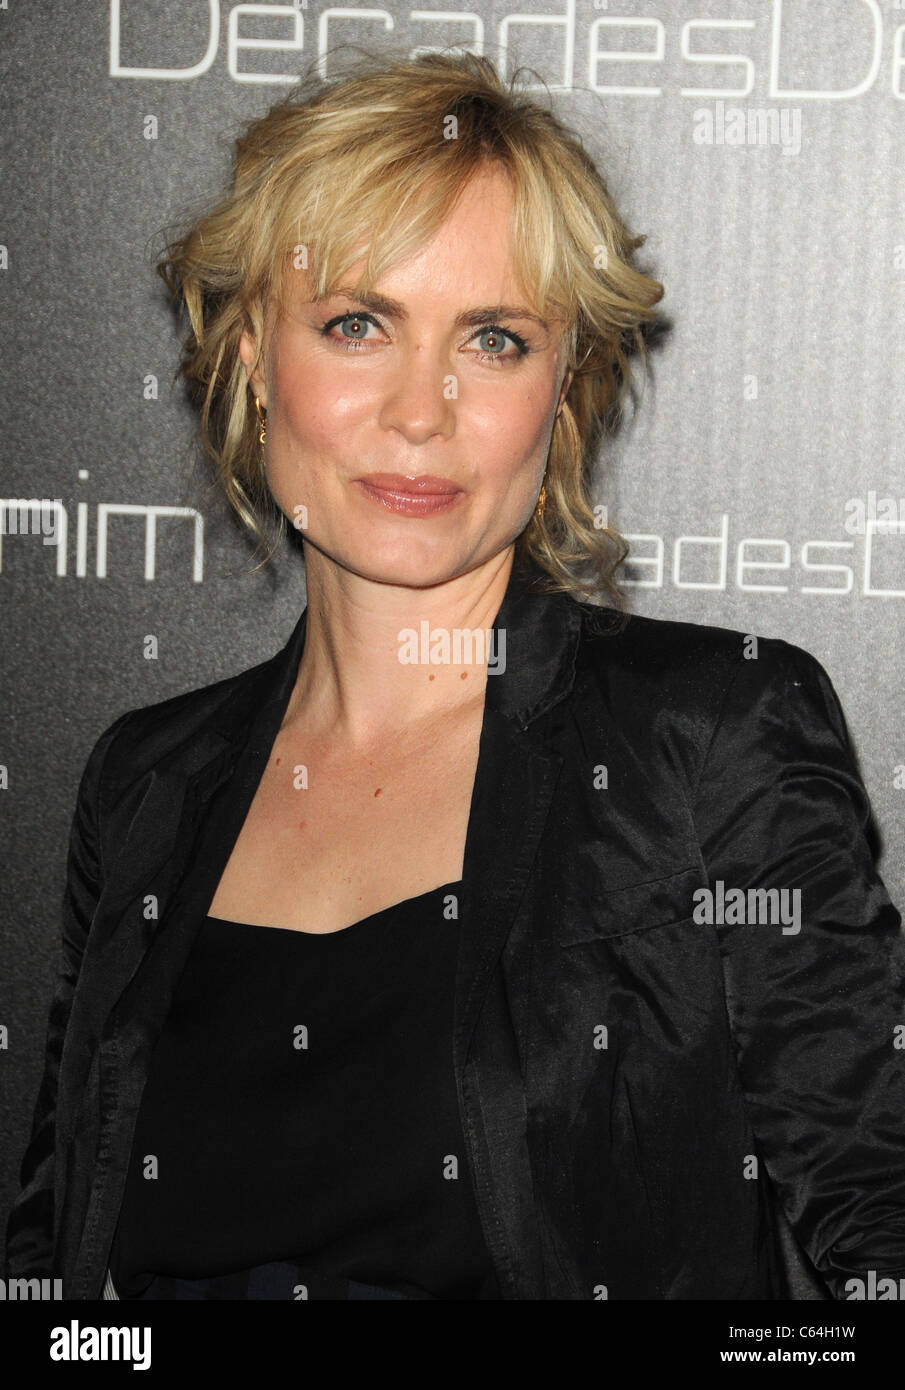 Radha Mitchell at arrivals for Decades Denim Launch Party, home of Julia Sorkin, Beverly Hills, CA November 2, 2010. - Stock Image